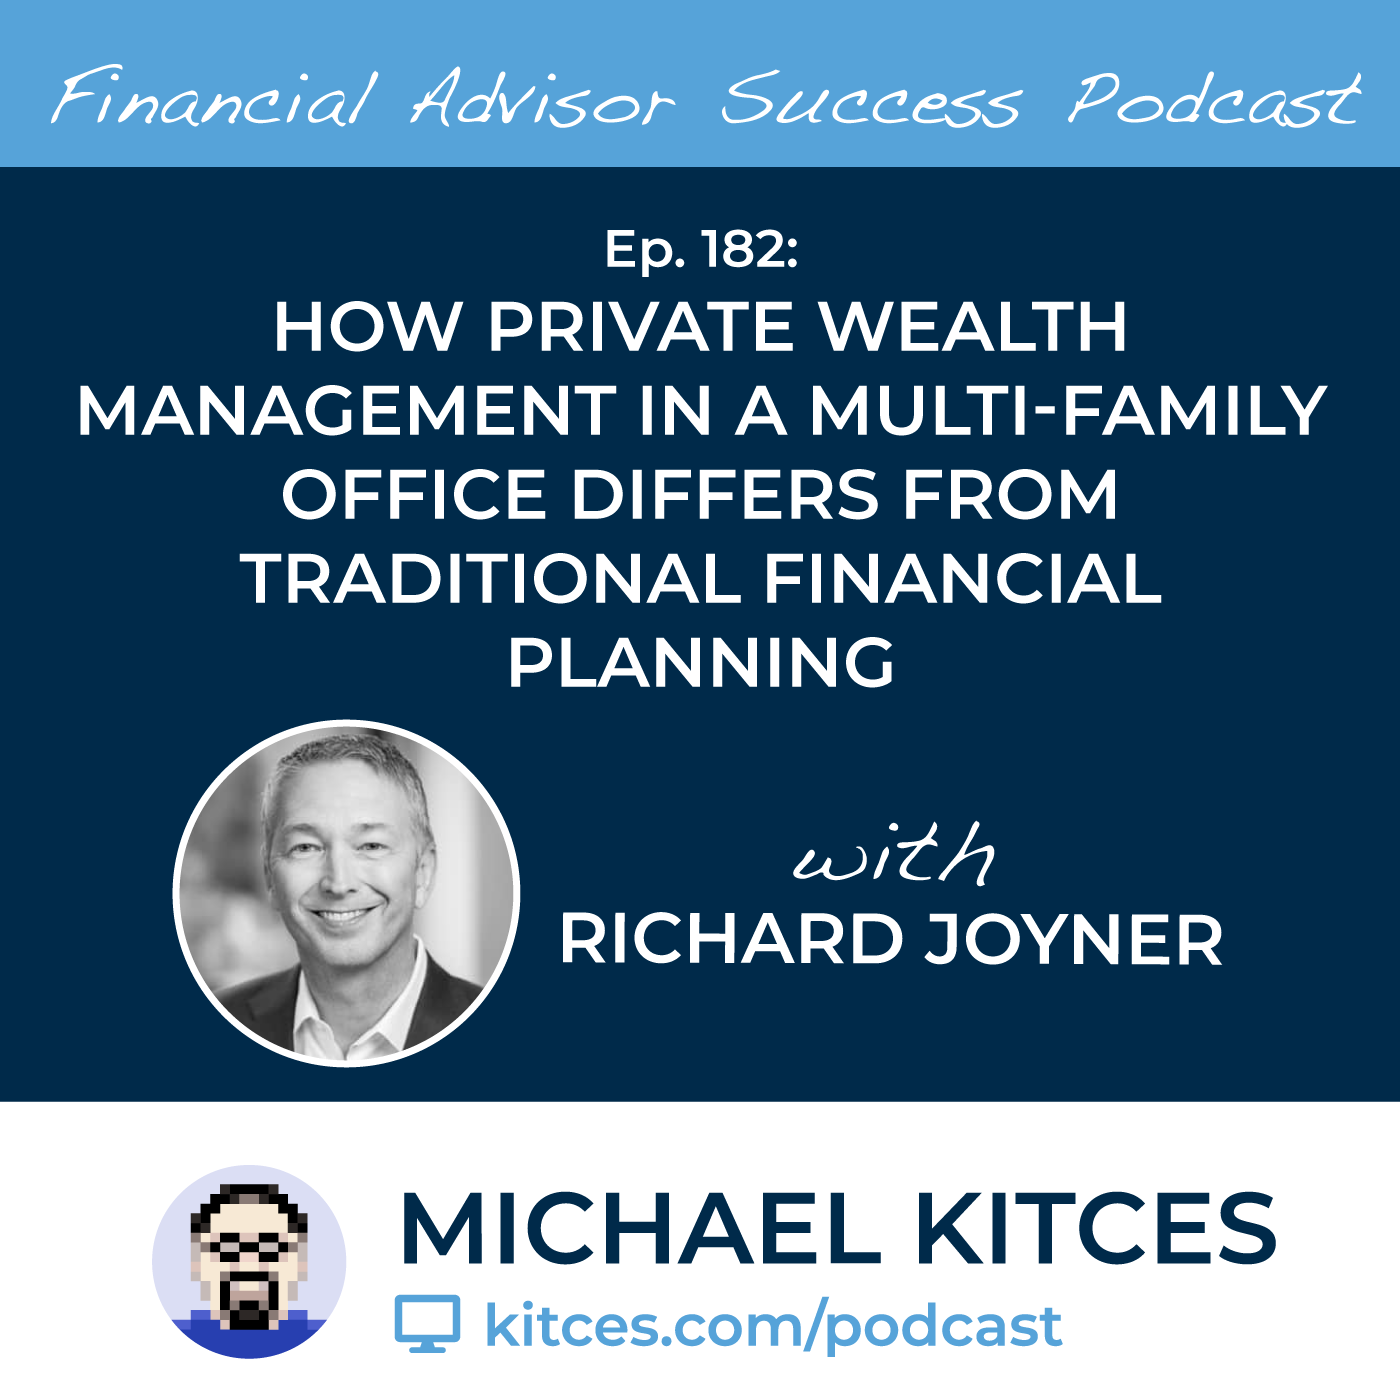 Ep 182: How Private Wealth Management In A Multi-Family Office Differs From Traditional Financial Planning with Richard Joyner